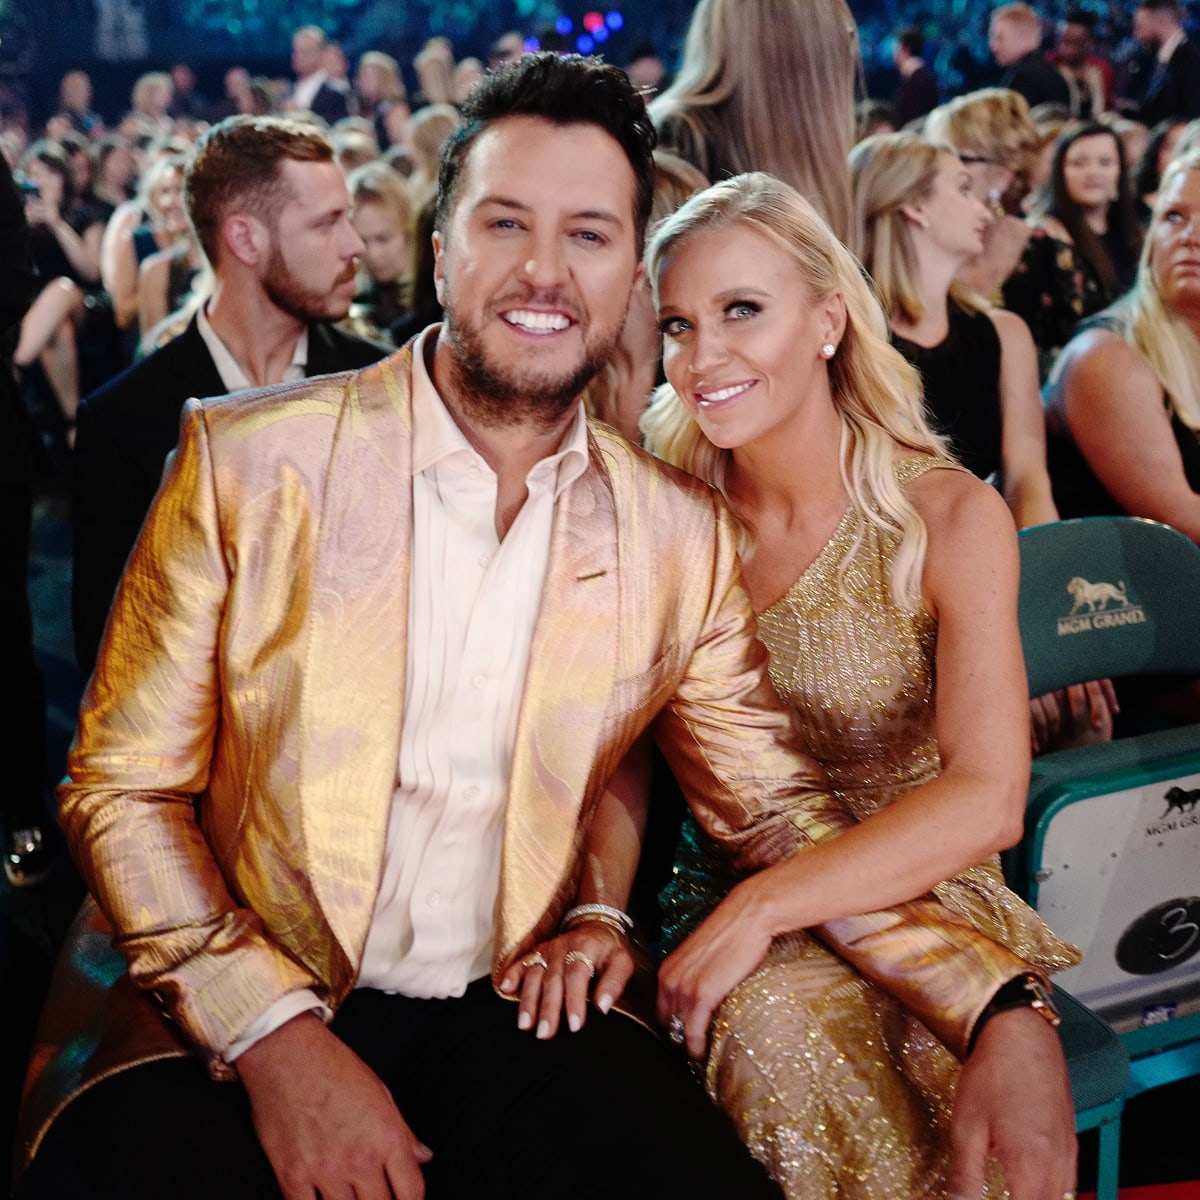 Luke Bryan S Sister Passed Away Suddenly So He And His Wife